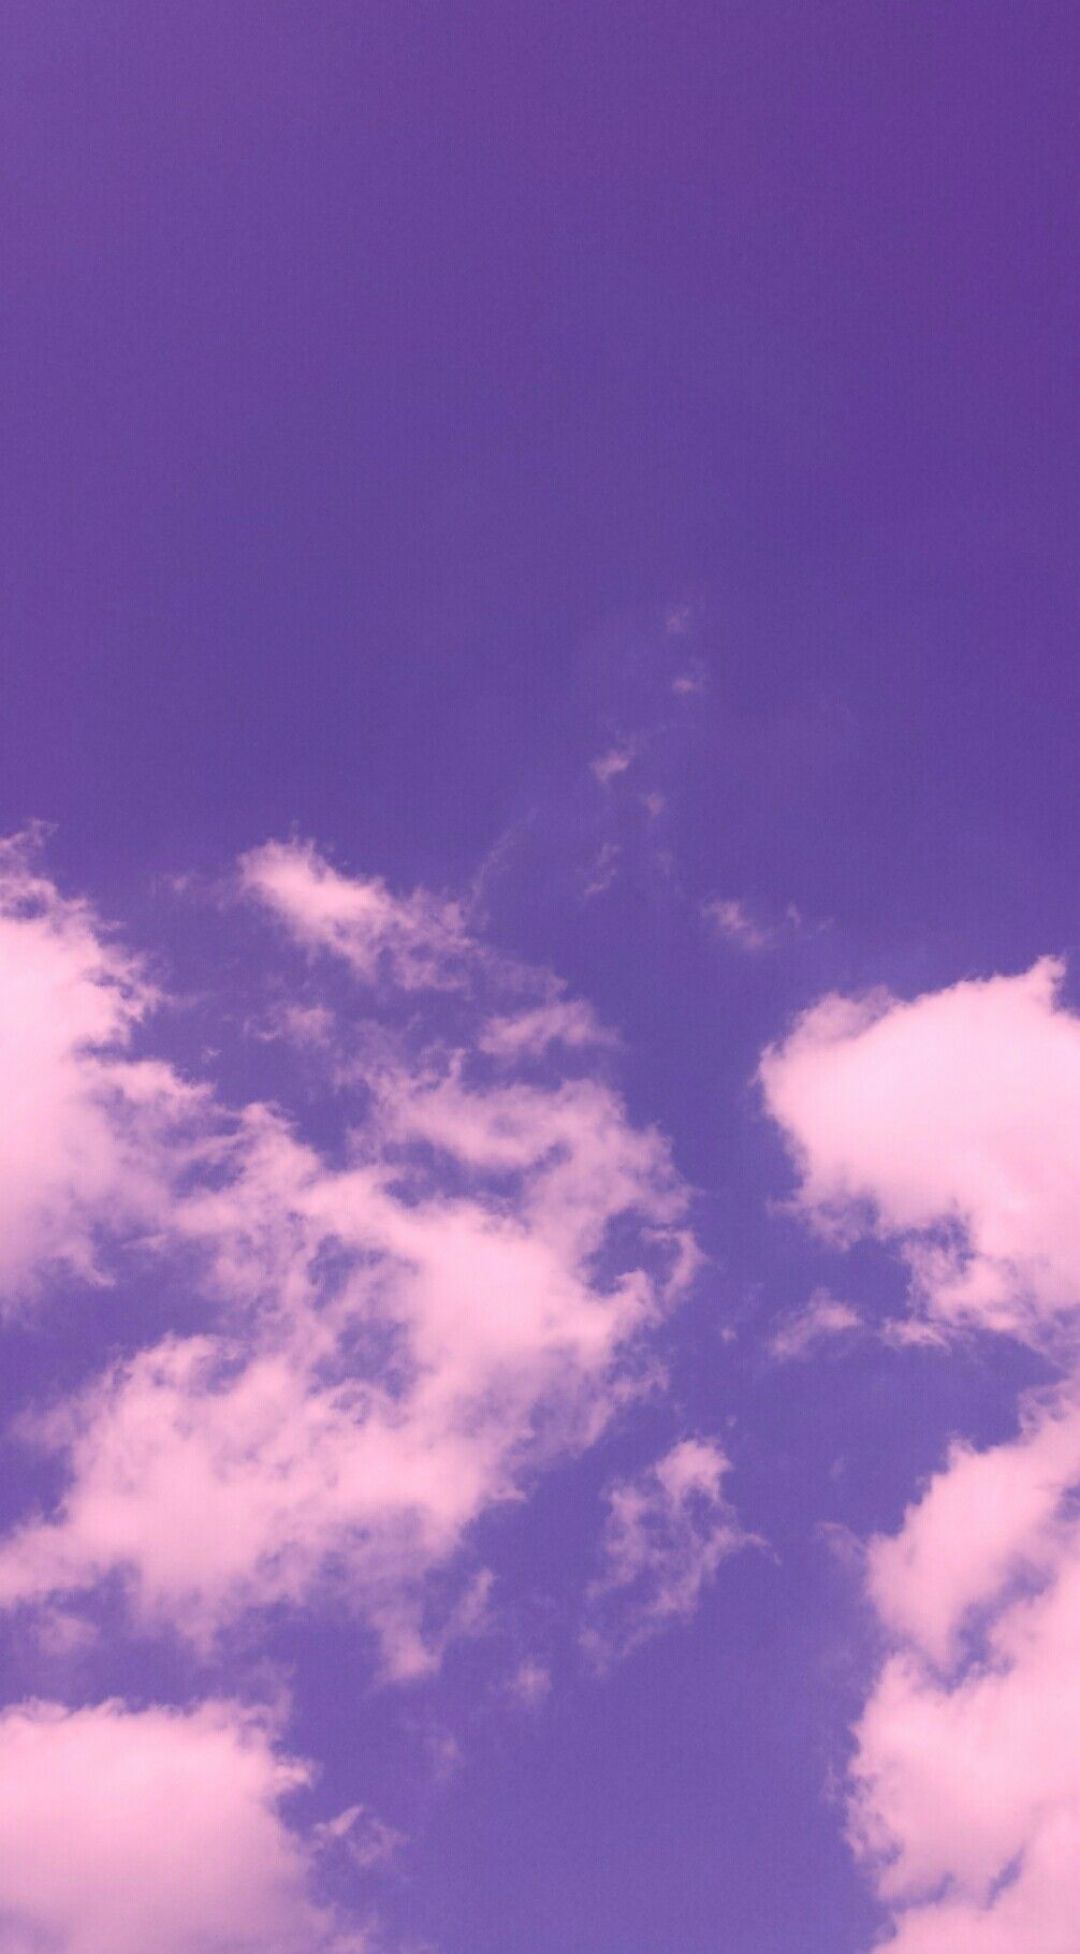 Clouds Android Iphone Desktop Hd Backgrounds Wallpapers 1080p 4k 126370 Iphone Wallpaper Tumblr Aesthetic Purple Wallpaper Iphone Purple Wallpaper